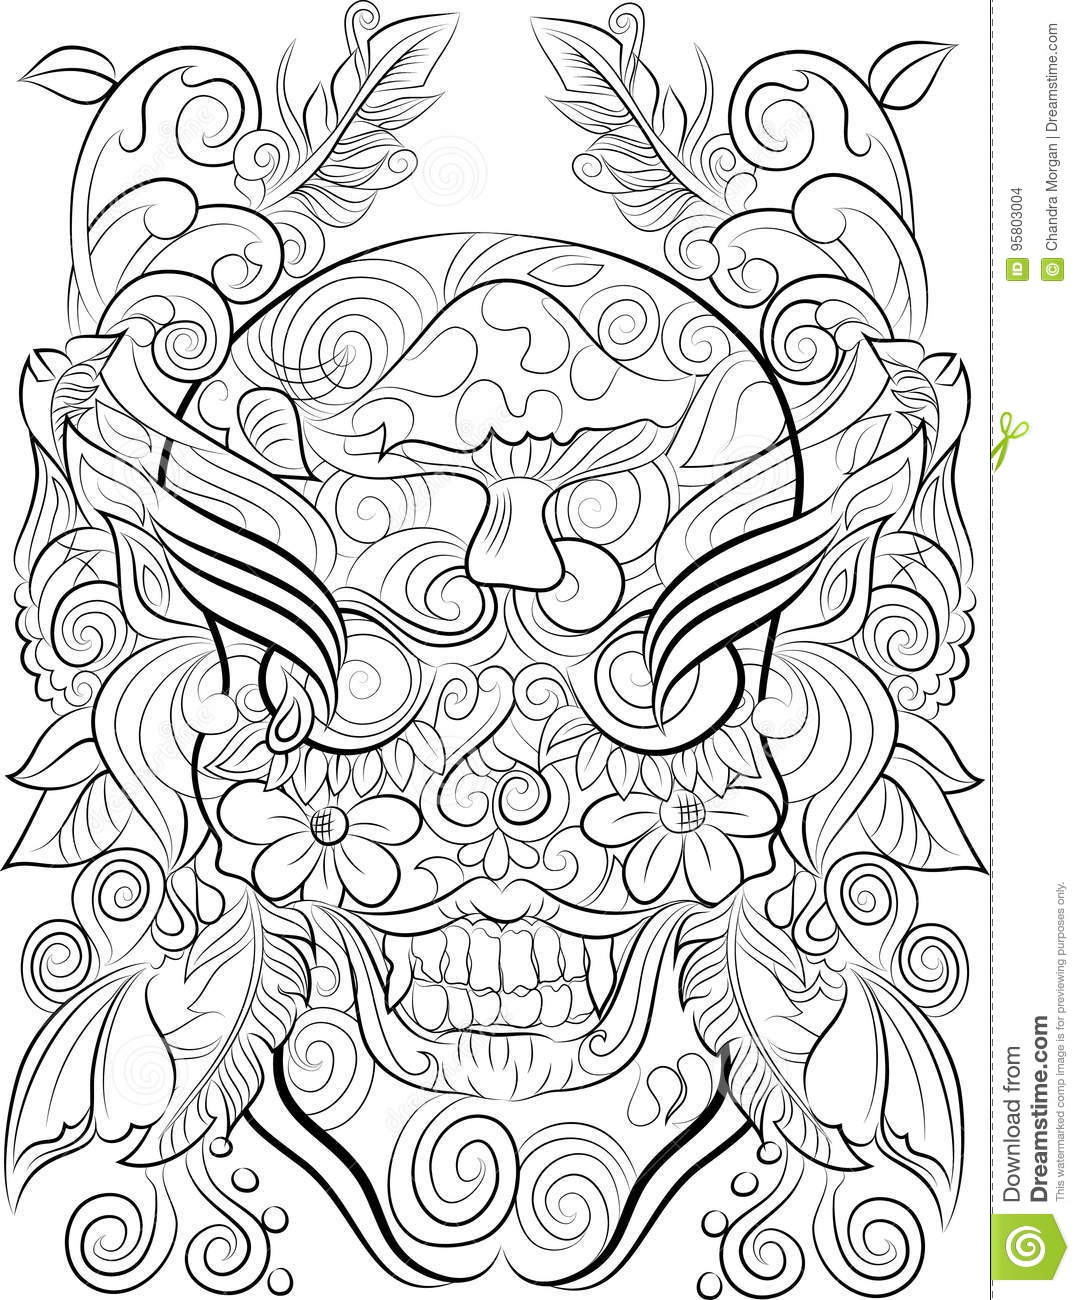 Hand Drawn Skull Colouring Page